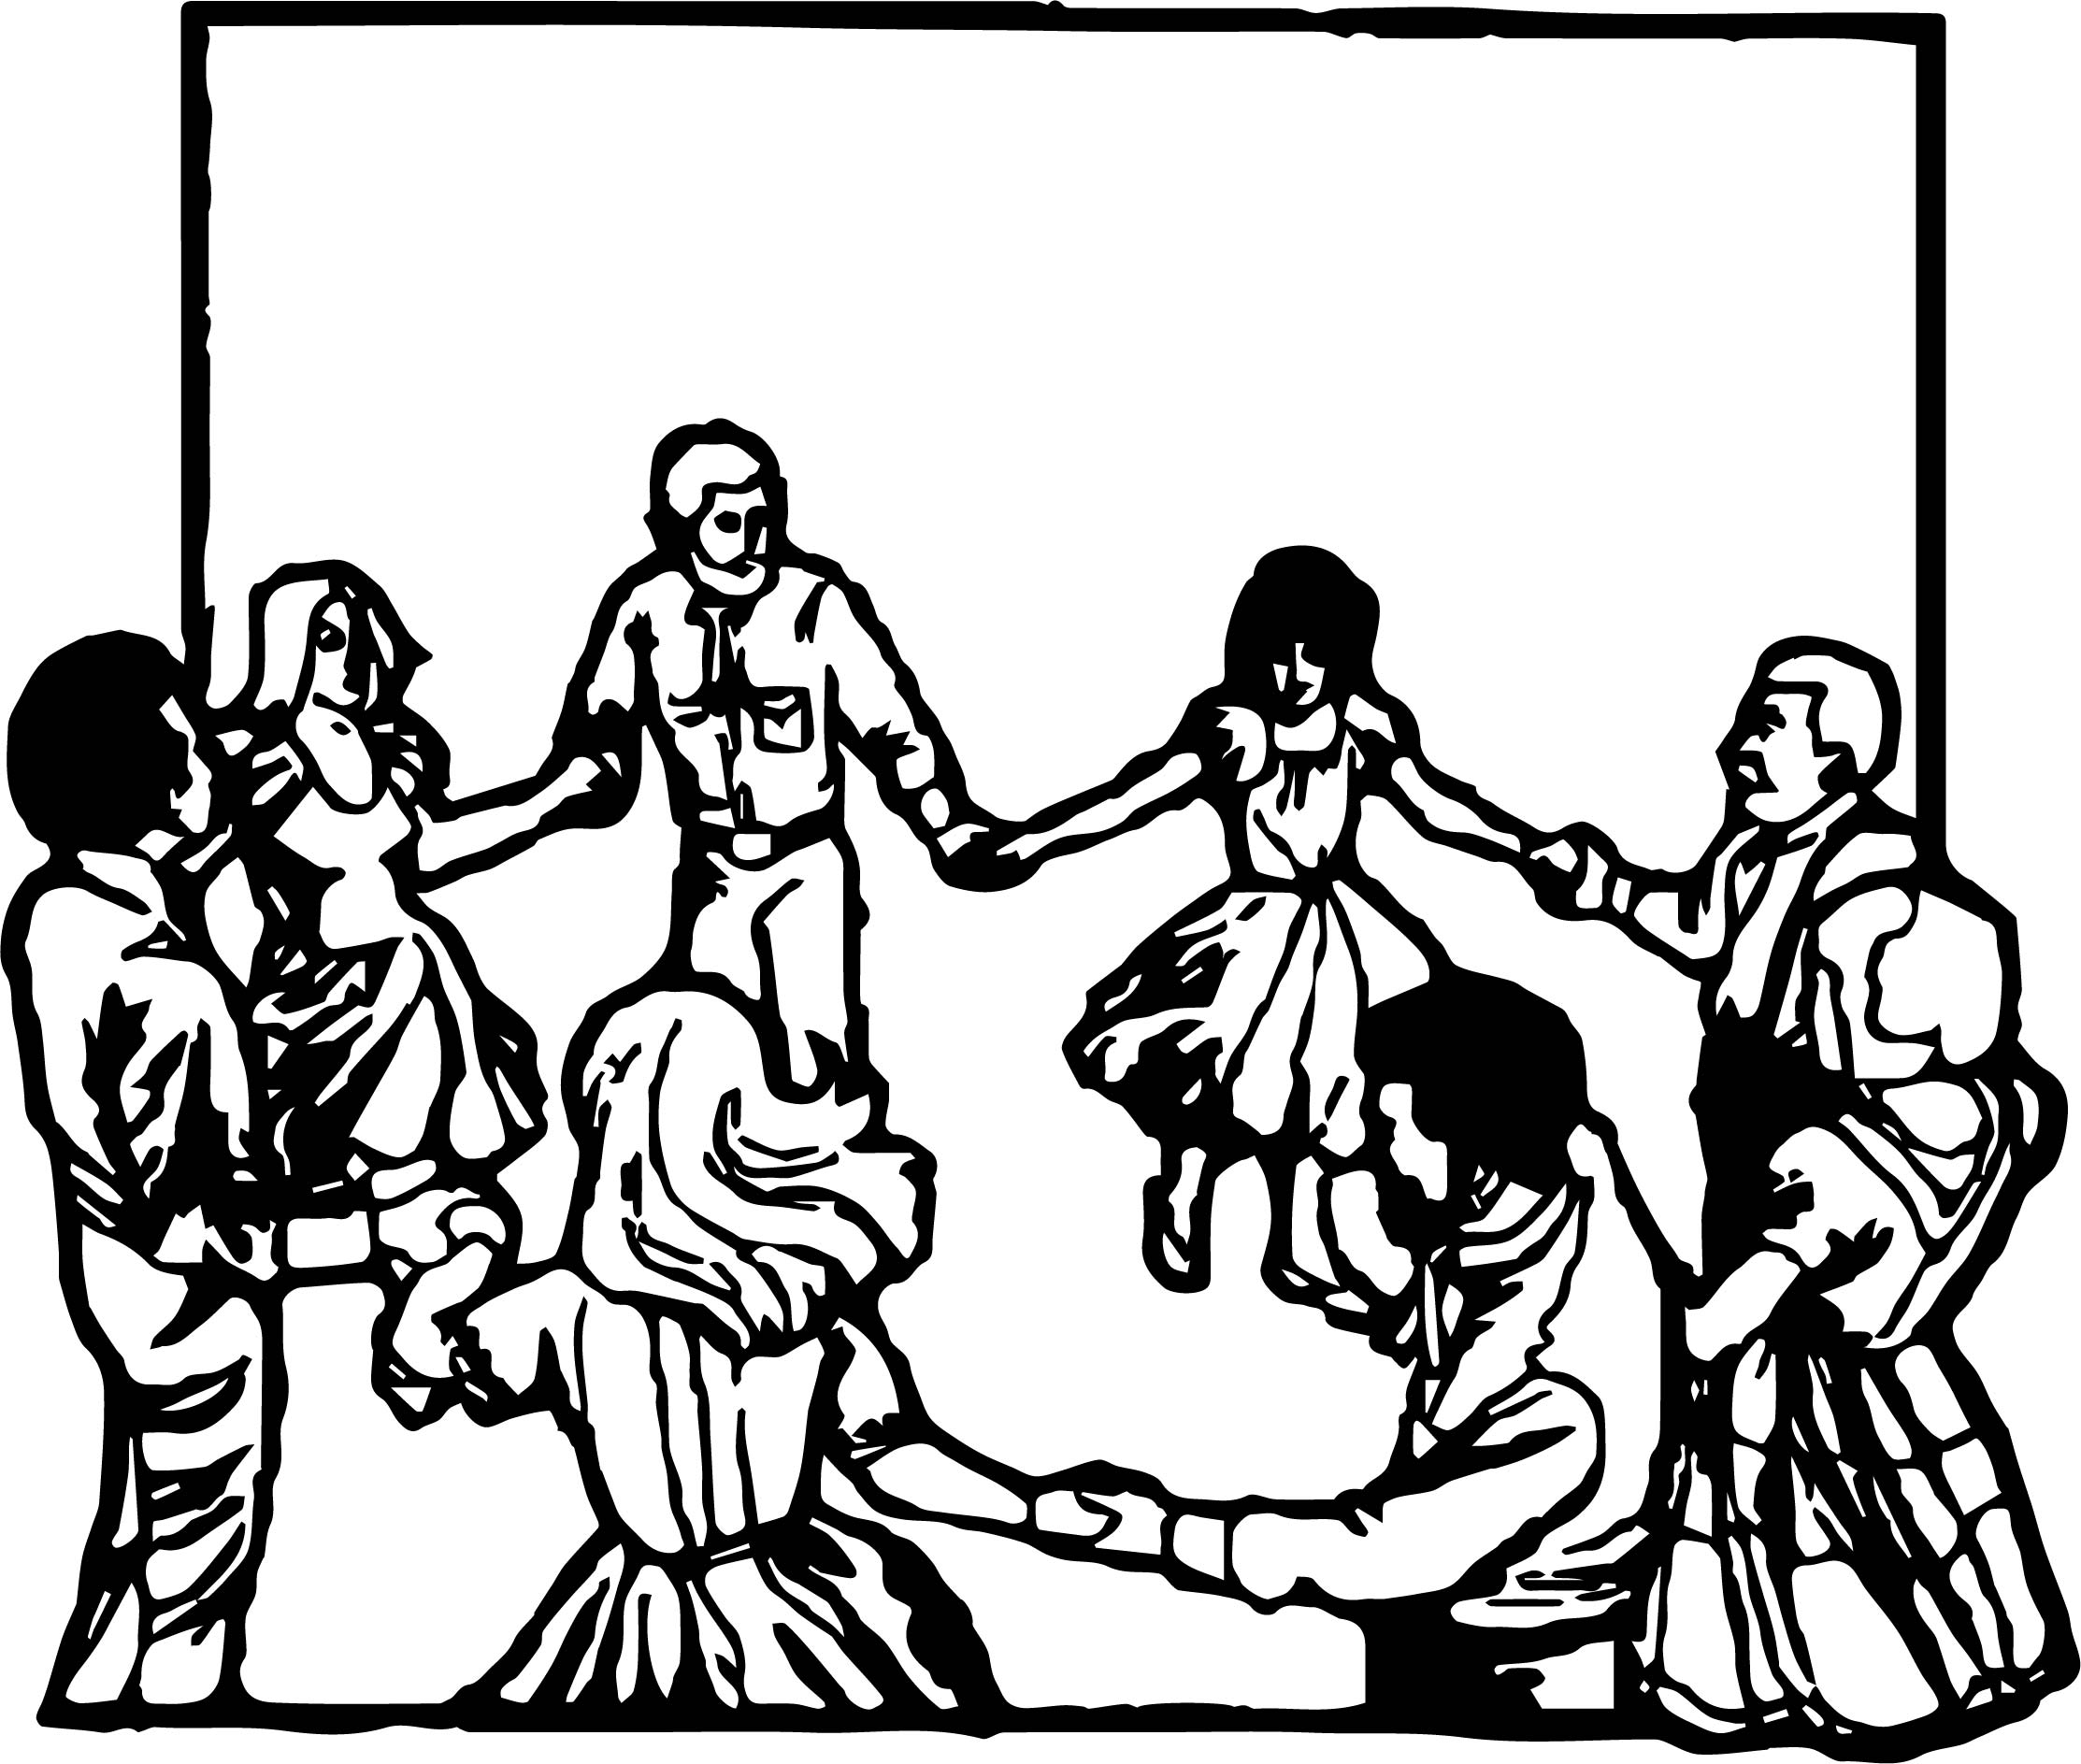 2226x1887 Coloring Pages Of People Dancing